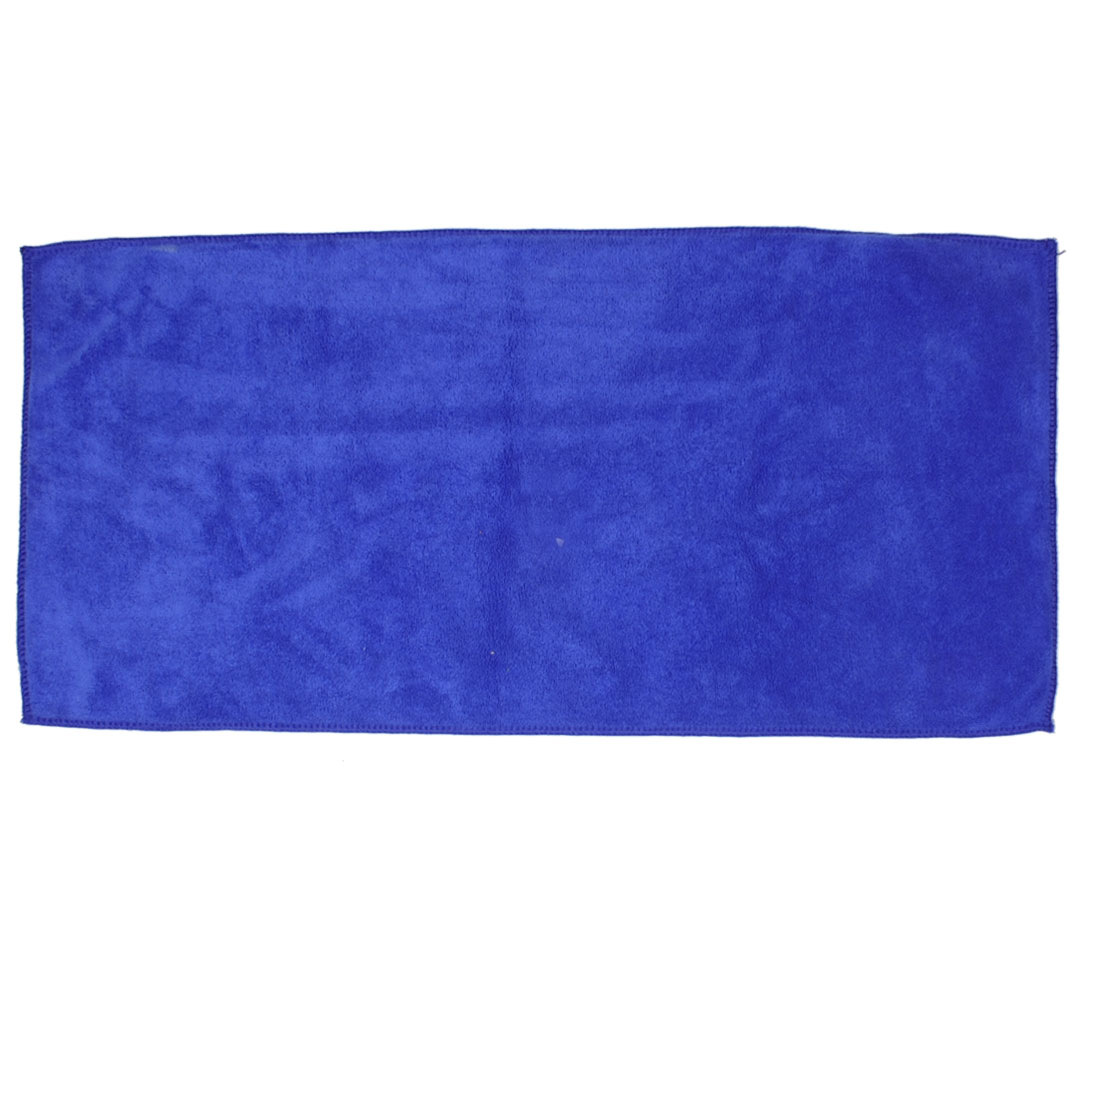 "Blue Microfiber Towel Car Cleaning Home Cloth 26"" x 12.6"""